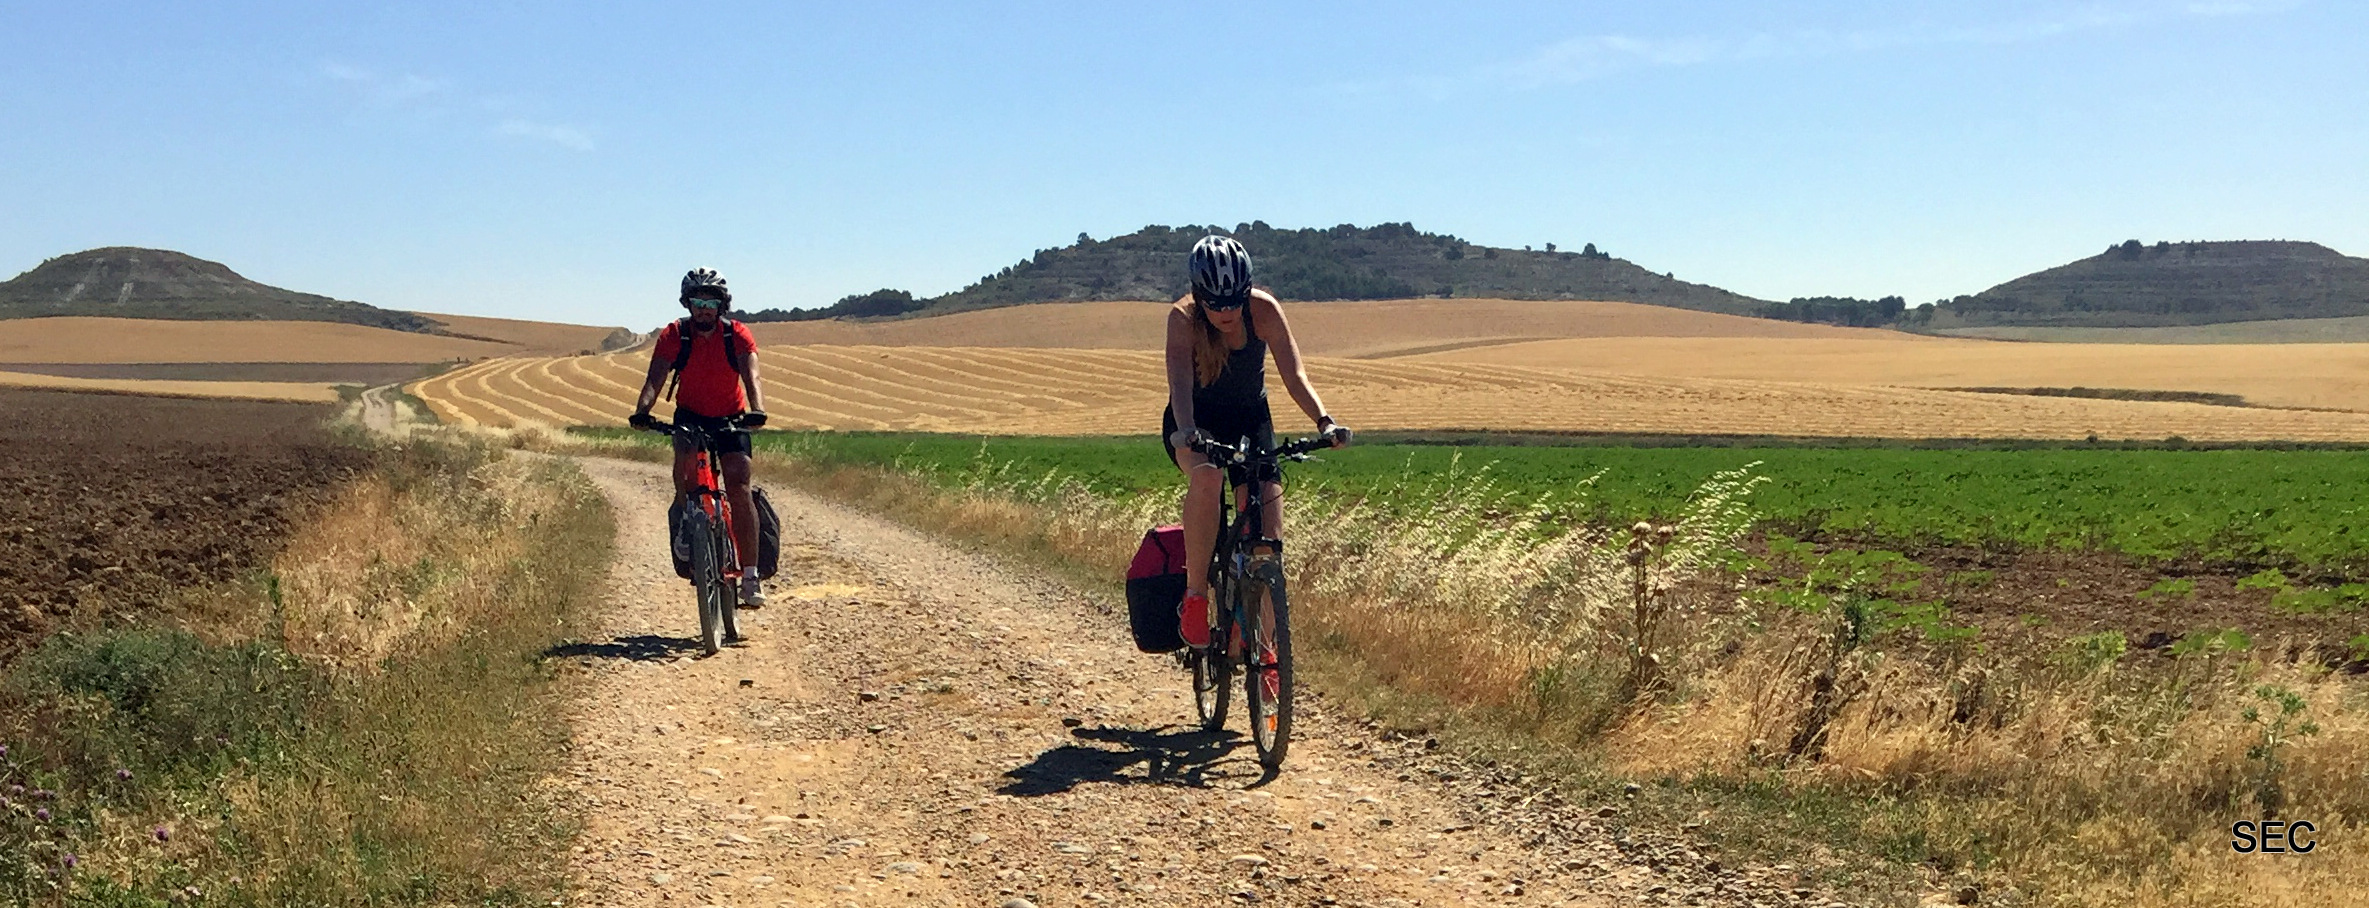 Two pilgrims doing the Saint James Way by bike on the road to Frómista